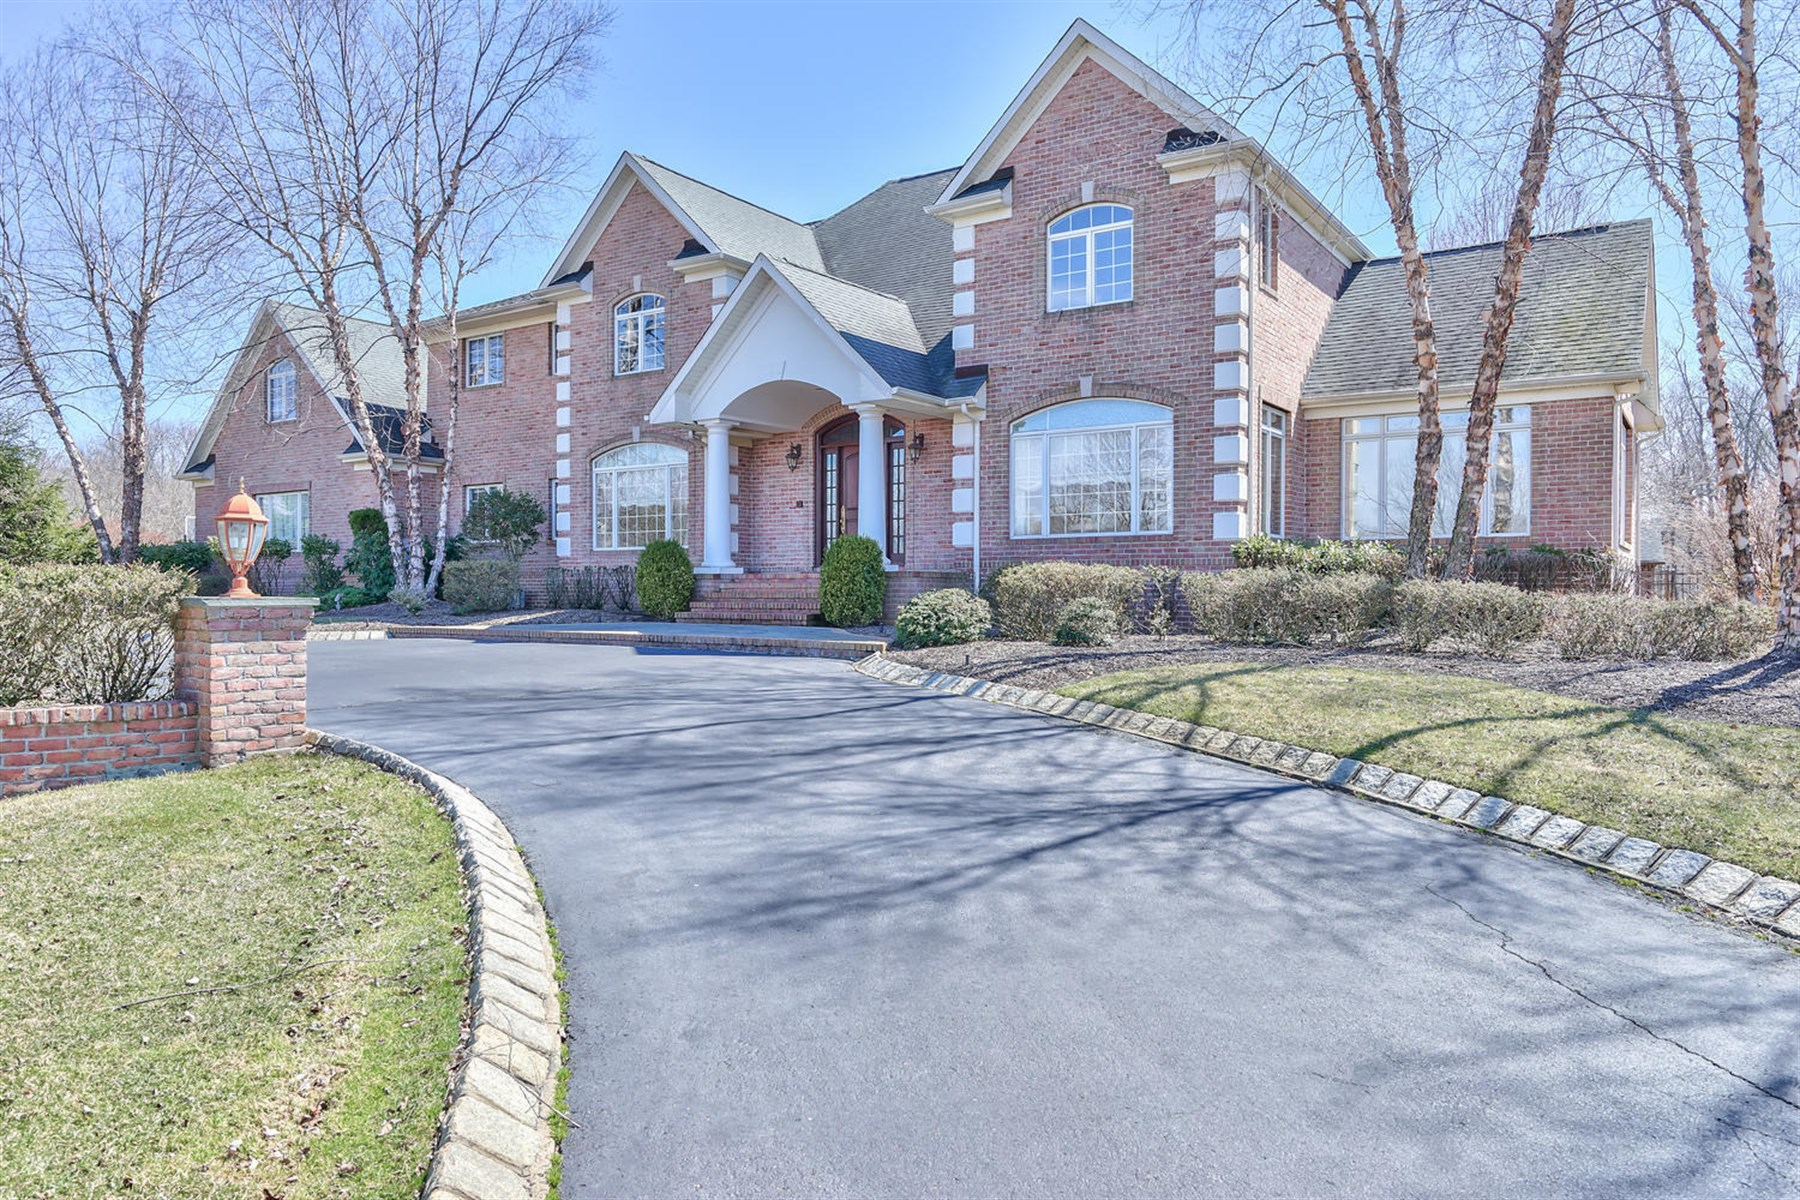 Single Family Home for Sale at An outdoor Entertainment Paradise 12 Squan Song Lane Colts Neck, New Jersey 07722 United States